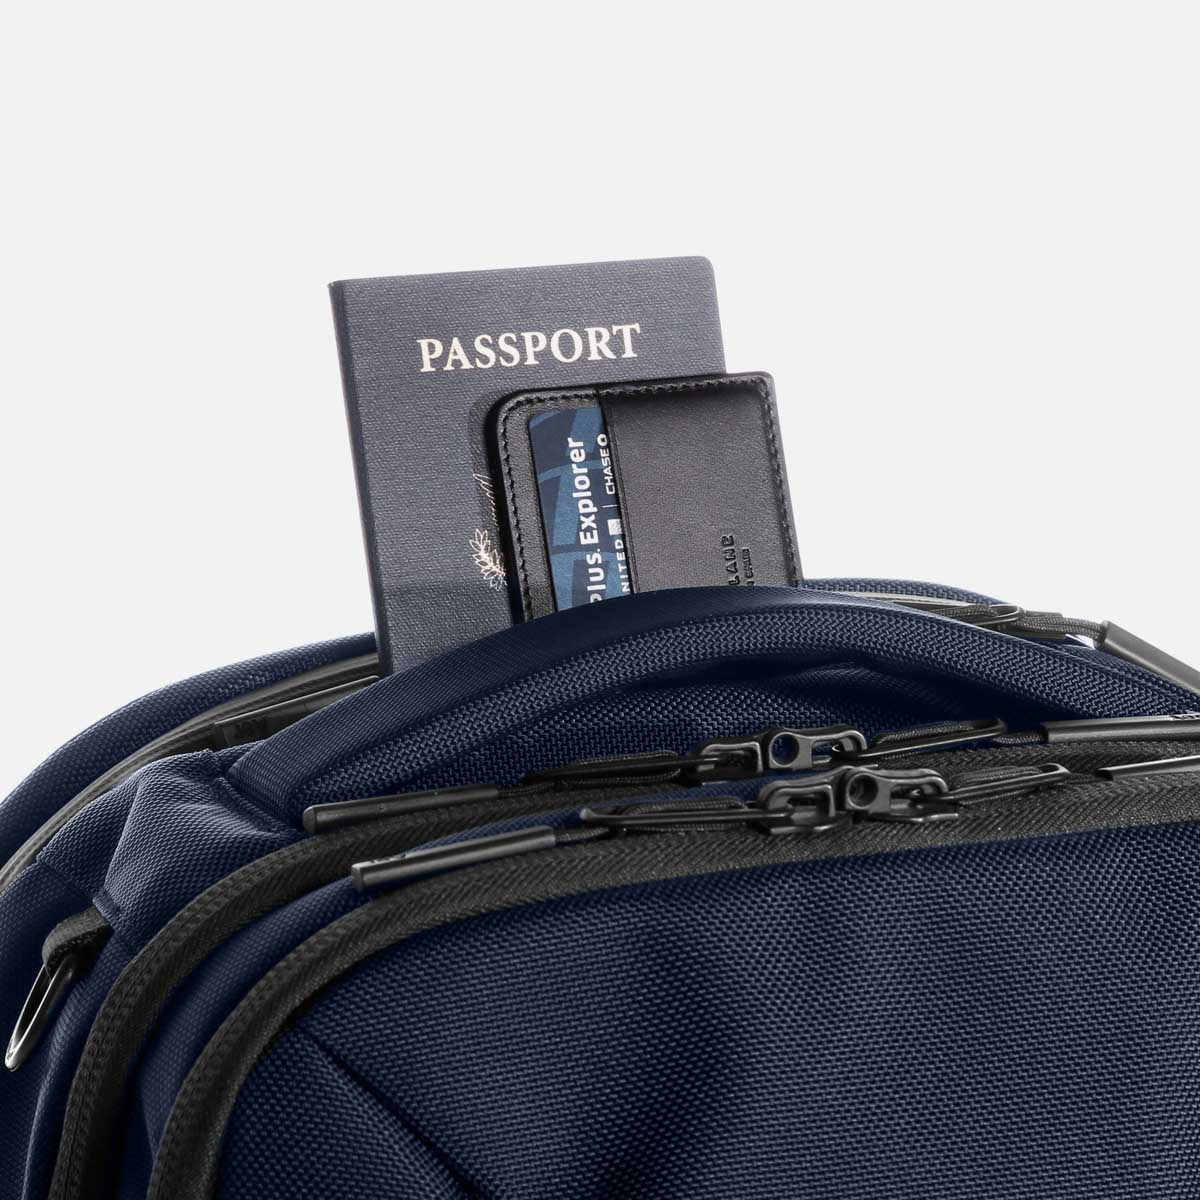 Quick access pocket for your travel documents.